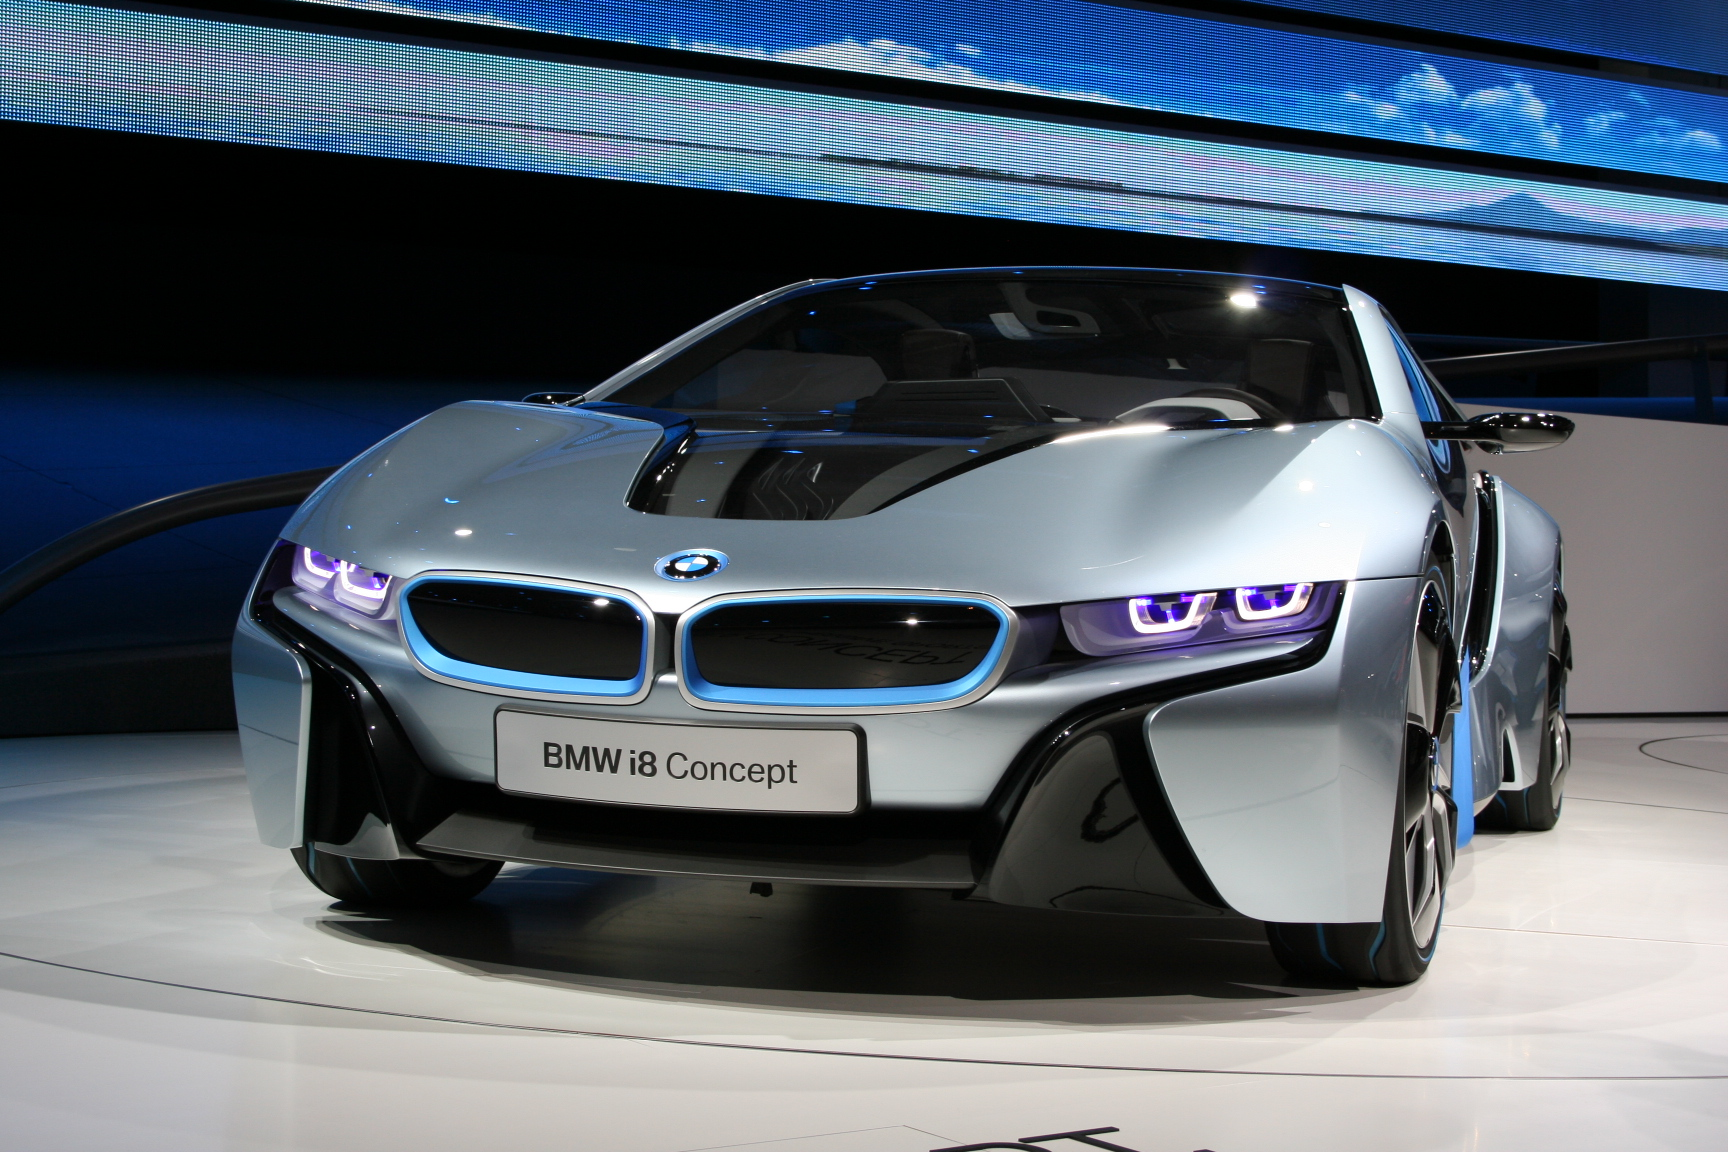 file bmw i8 concept iaa wikipedia. Black Bedroom Furniture Sets. Home Design Ideas